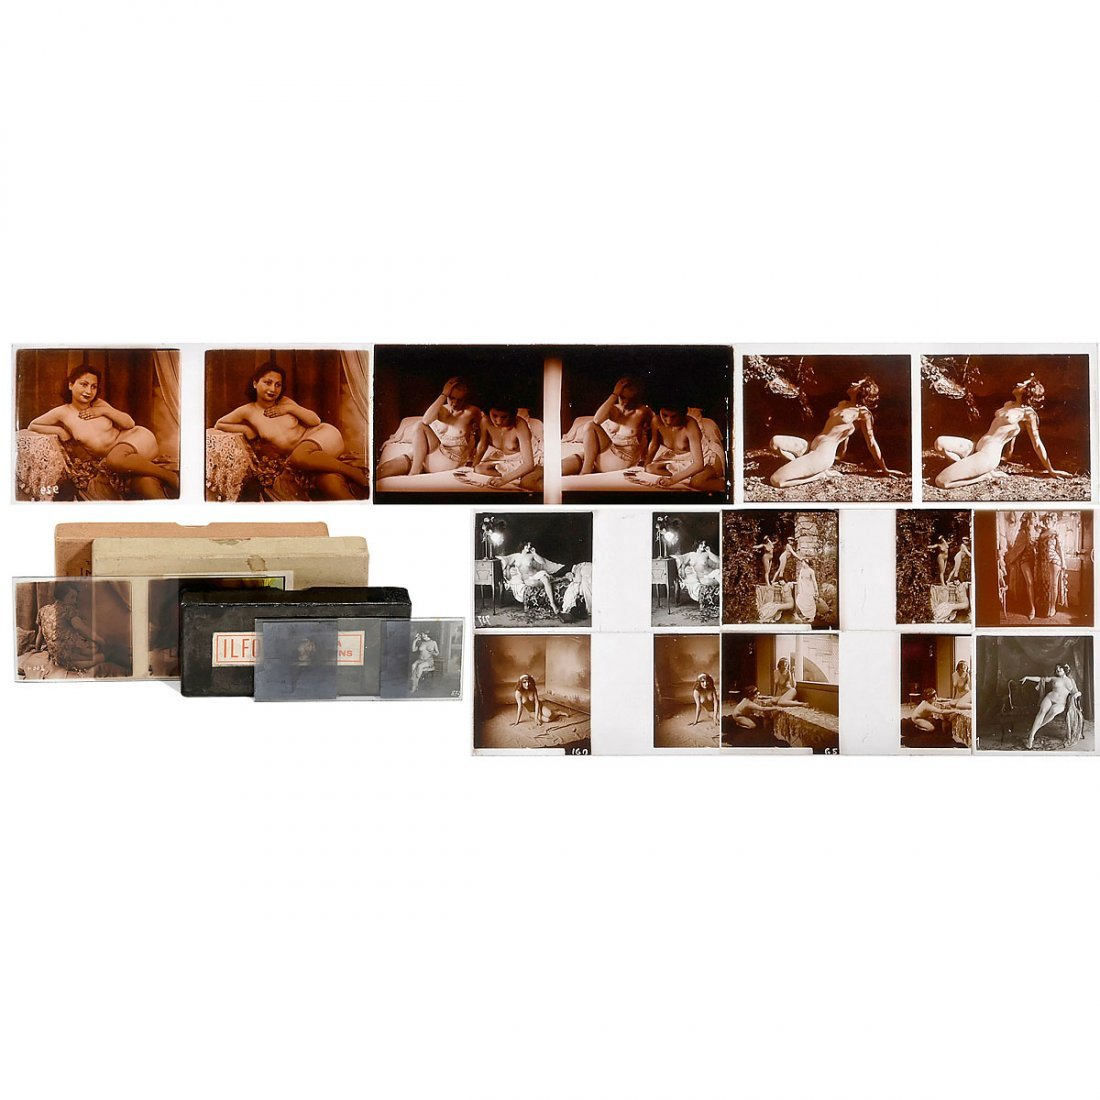 36 Erotic Glass Stereo Images, c. 1920